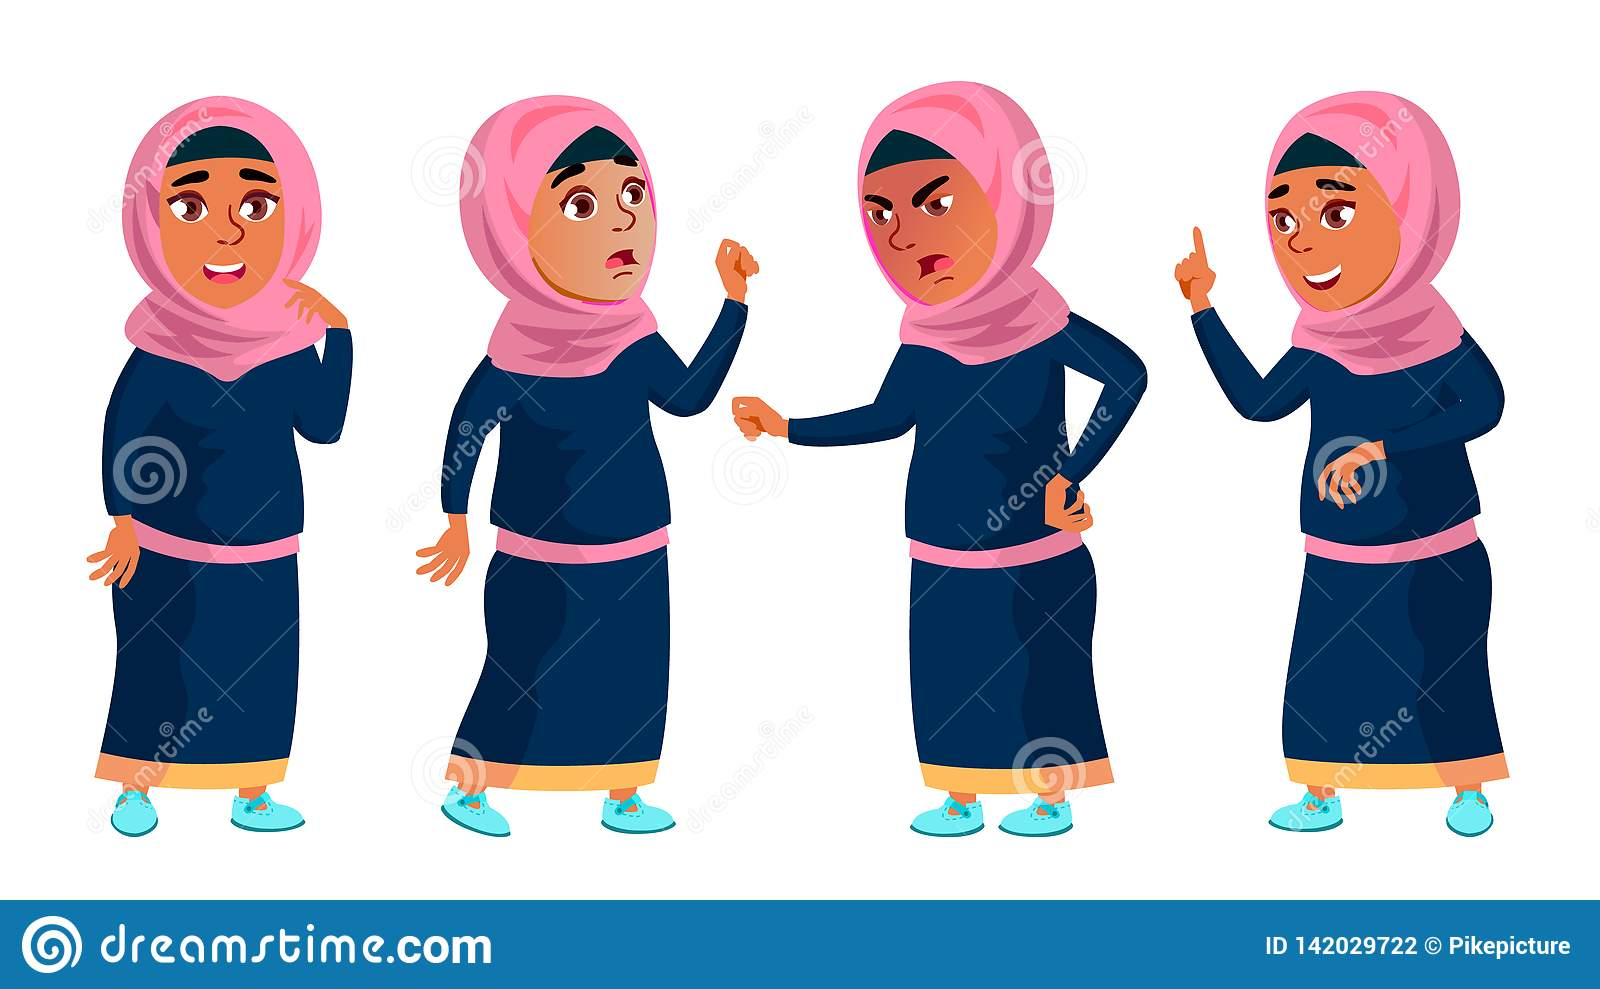 Arab, Muslim Girl School, Girl Kid Poses Set Vector. Child. Teenage. Traditional Clothes. For Web, Brochure, Poster